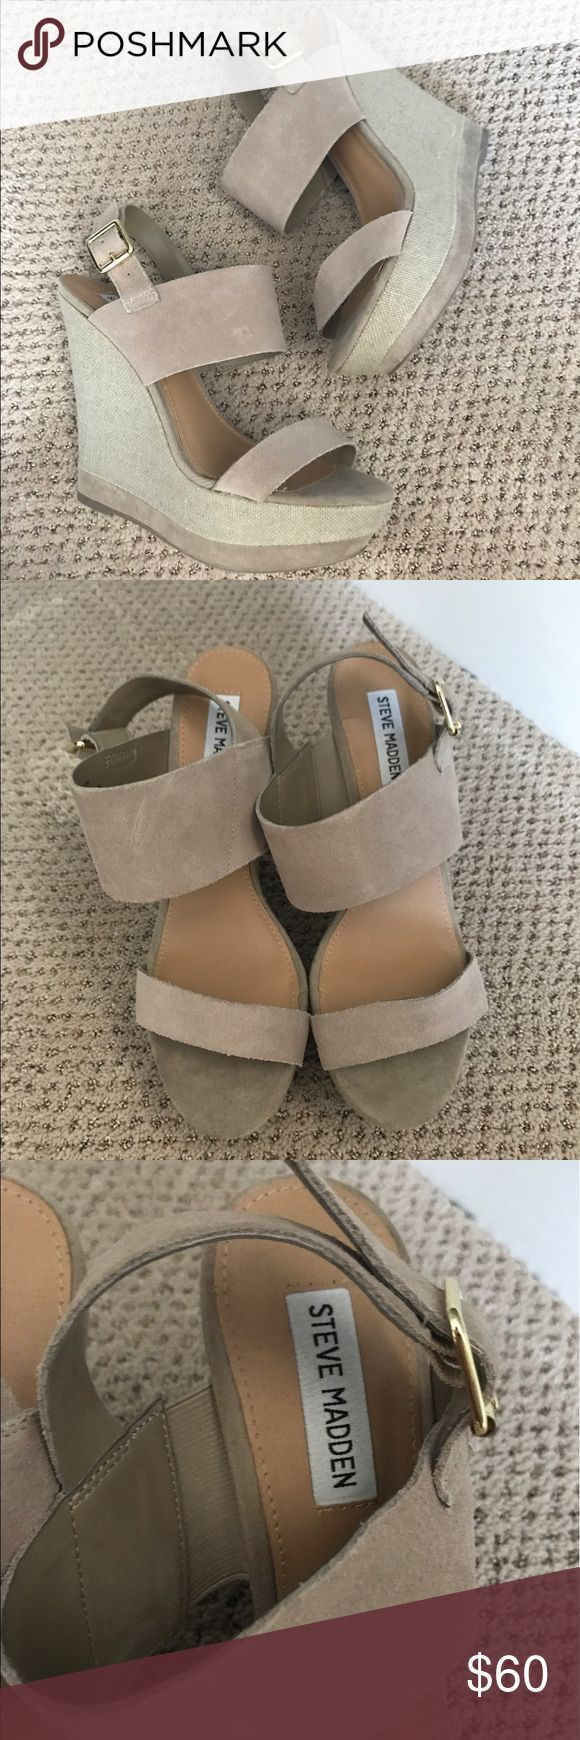 NWOT Steve Madden Wedges Brand new never worn wedges from Steve Madden. Suede texture and tan color. Look great on! Last picture is the same style but different color. Steve Madden Shoes Wedges